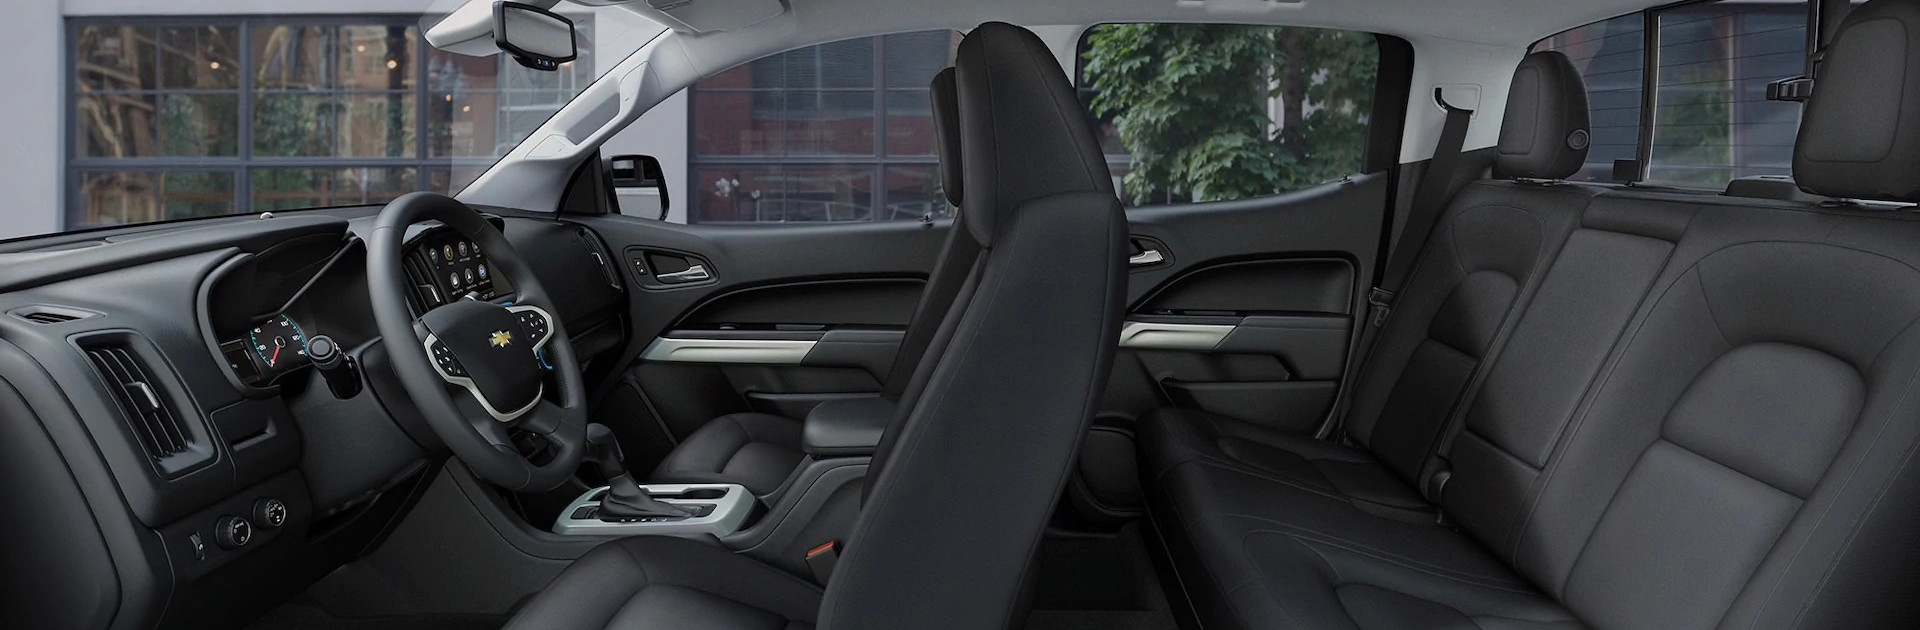 Enjoy Full Comfort During Every Drive in the 2020 Chevrolet Colorado!